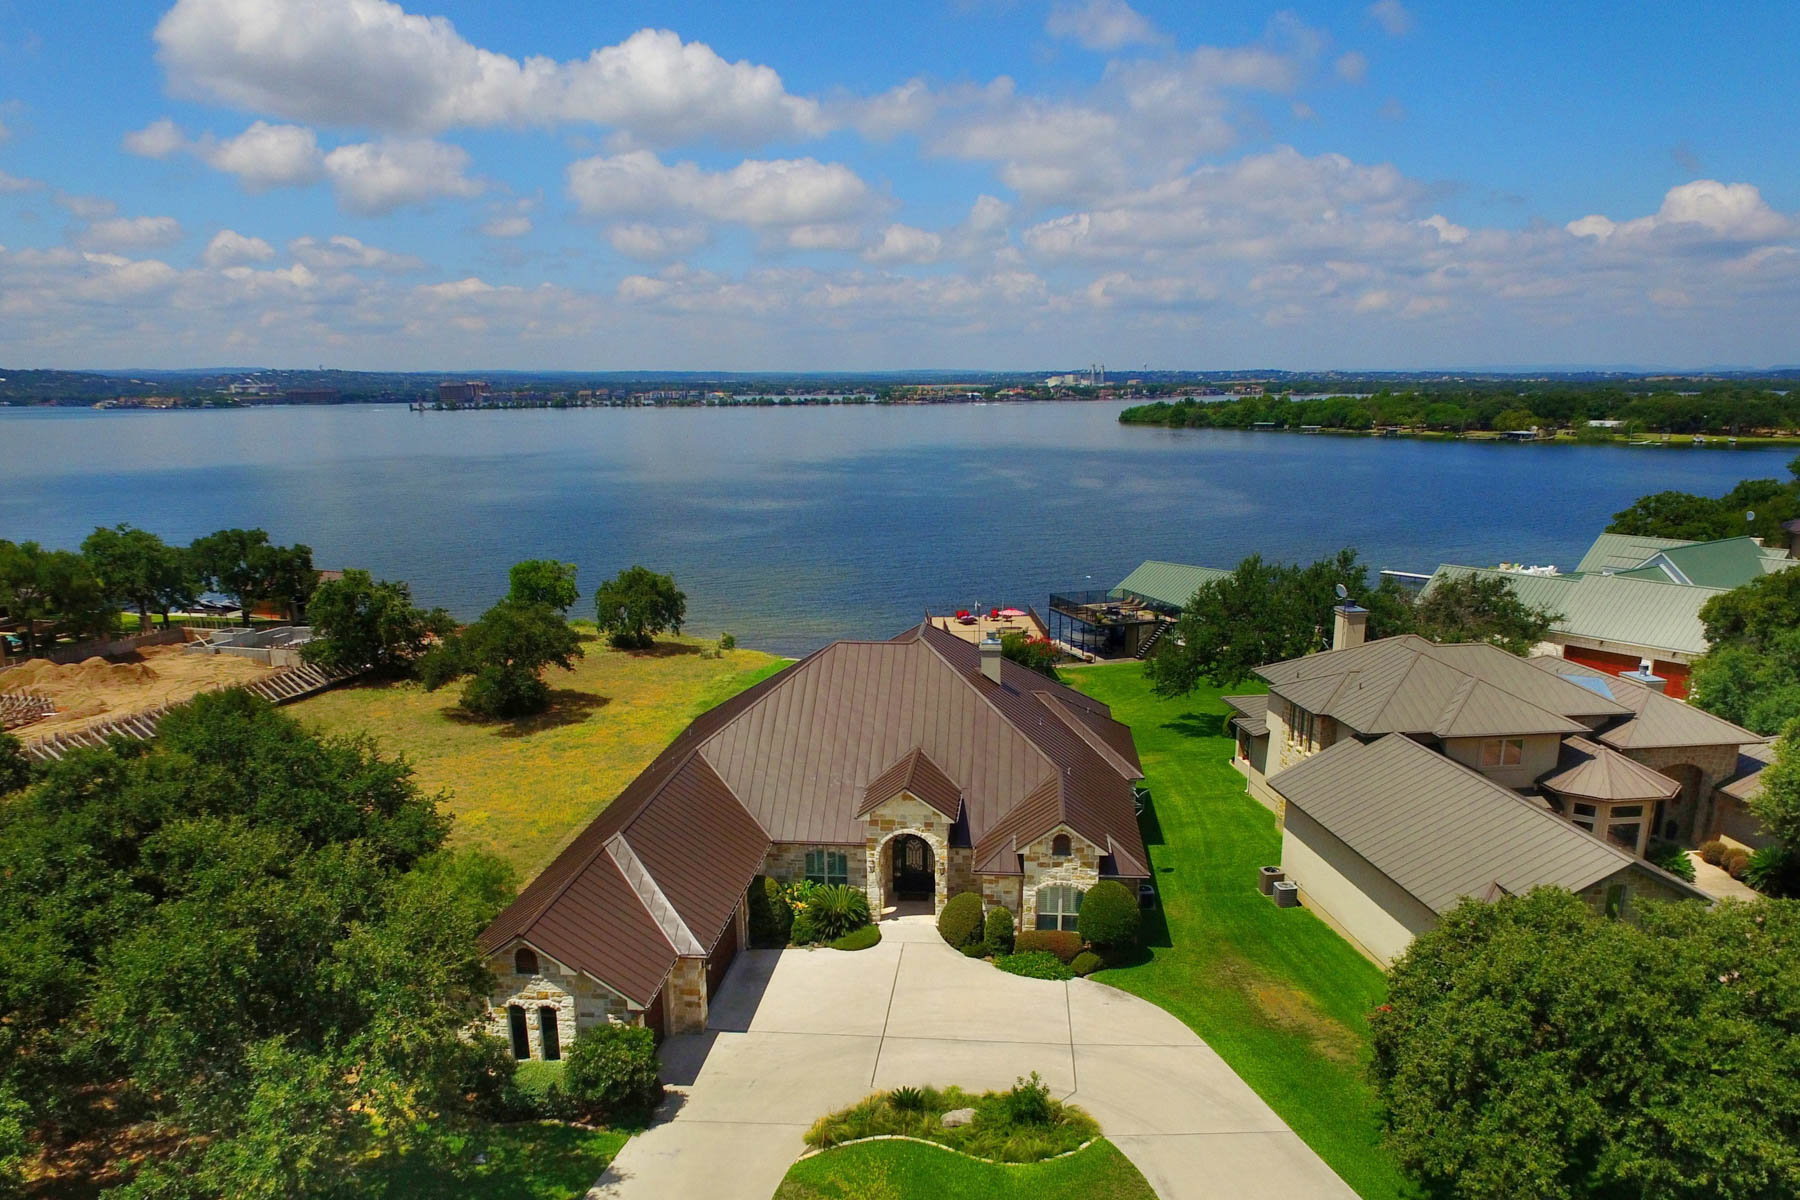 Casa Unifamiliar por un Venta en Absolute Paradise on Lake LBJ 125 Wilderness Cv Marble Falls, Texas 78654 Estados Unidos